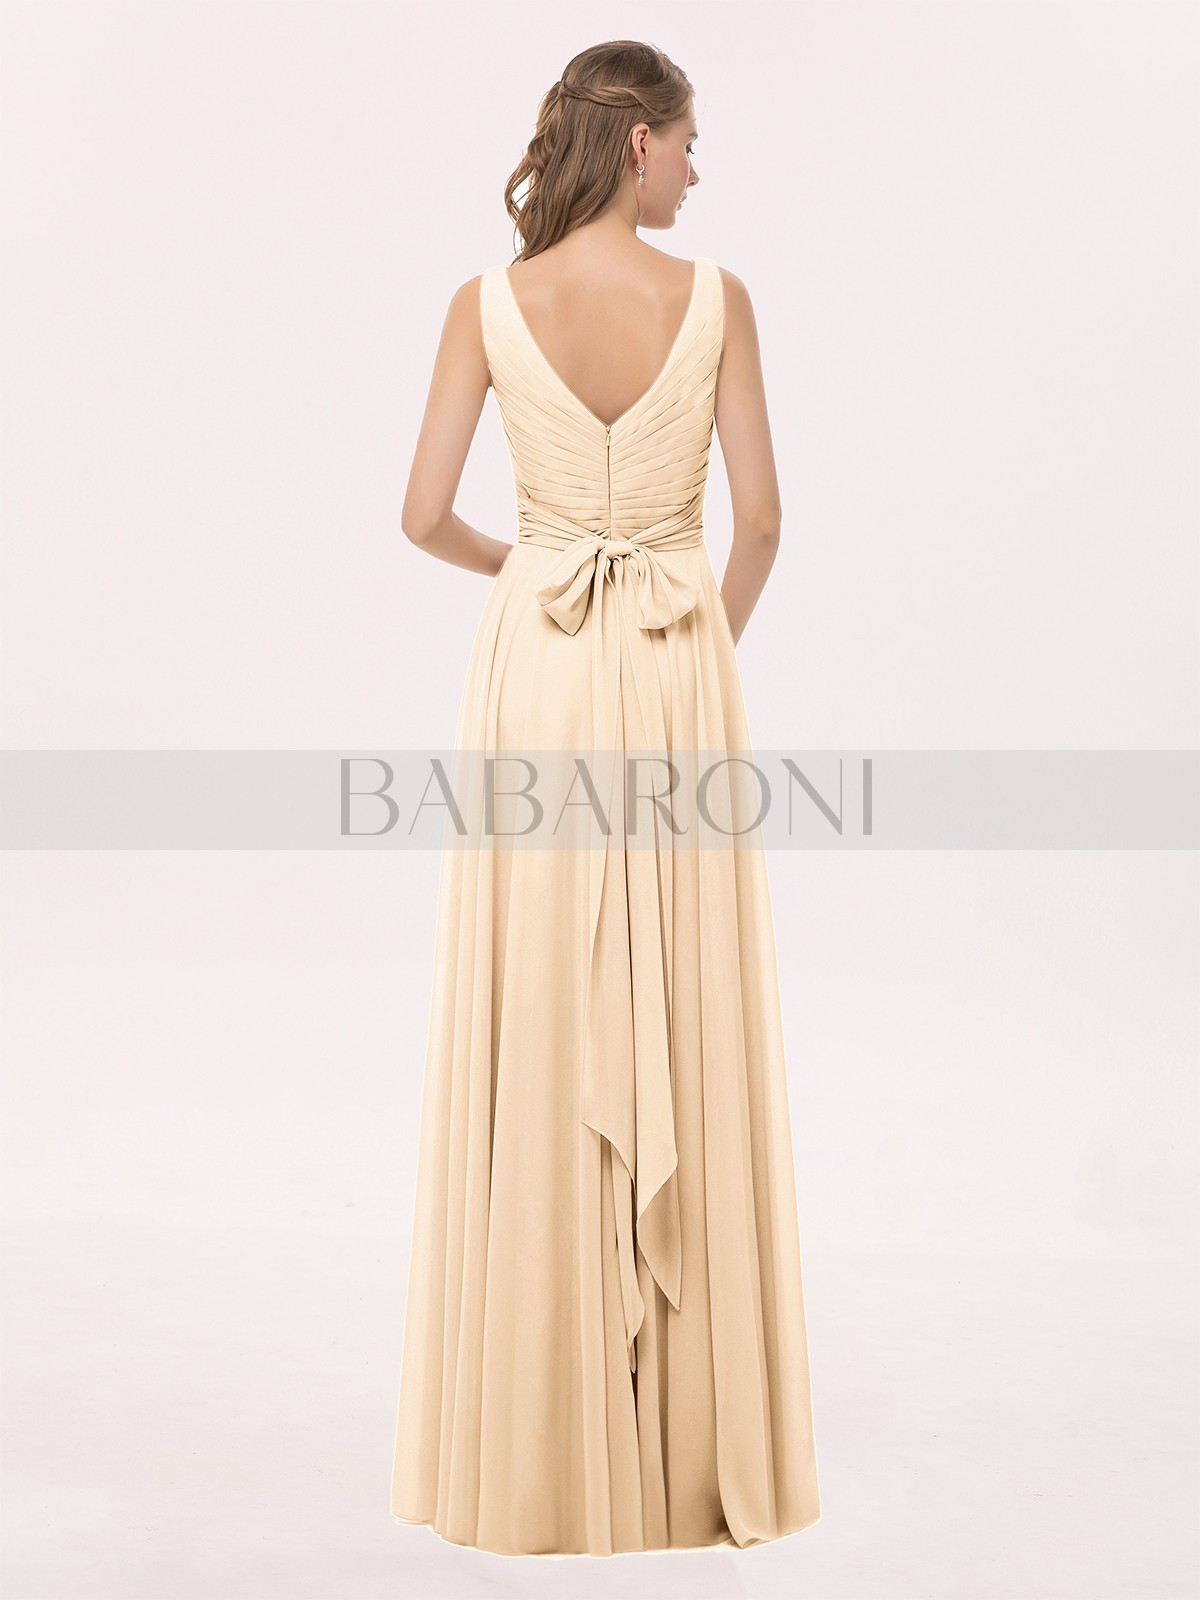 69021a3c766 Cassiopeia V Neck Long Chiffon Dress with Bow